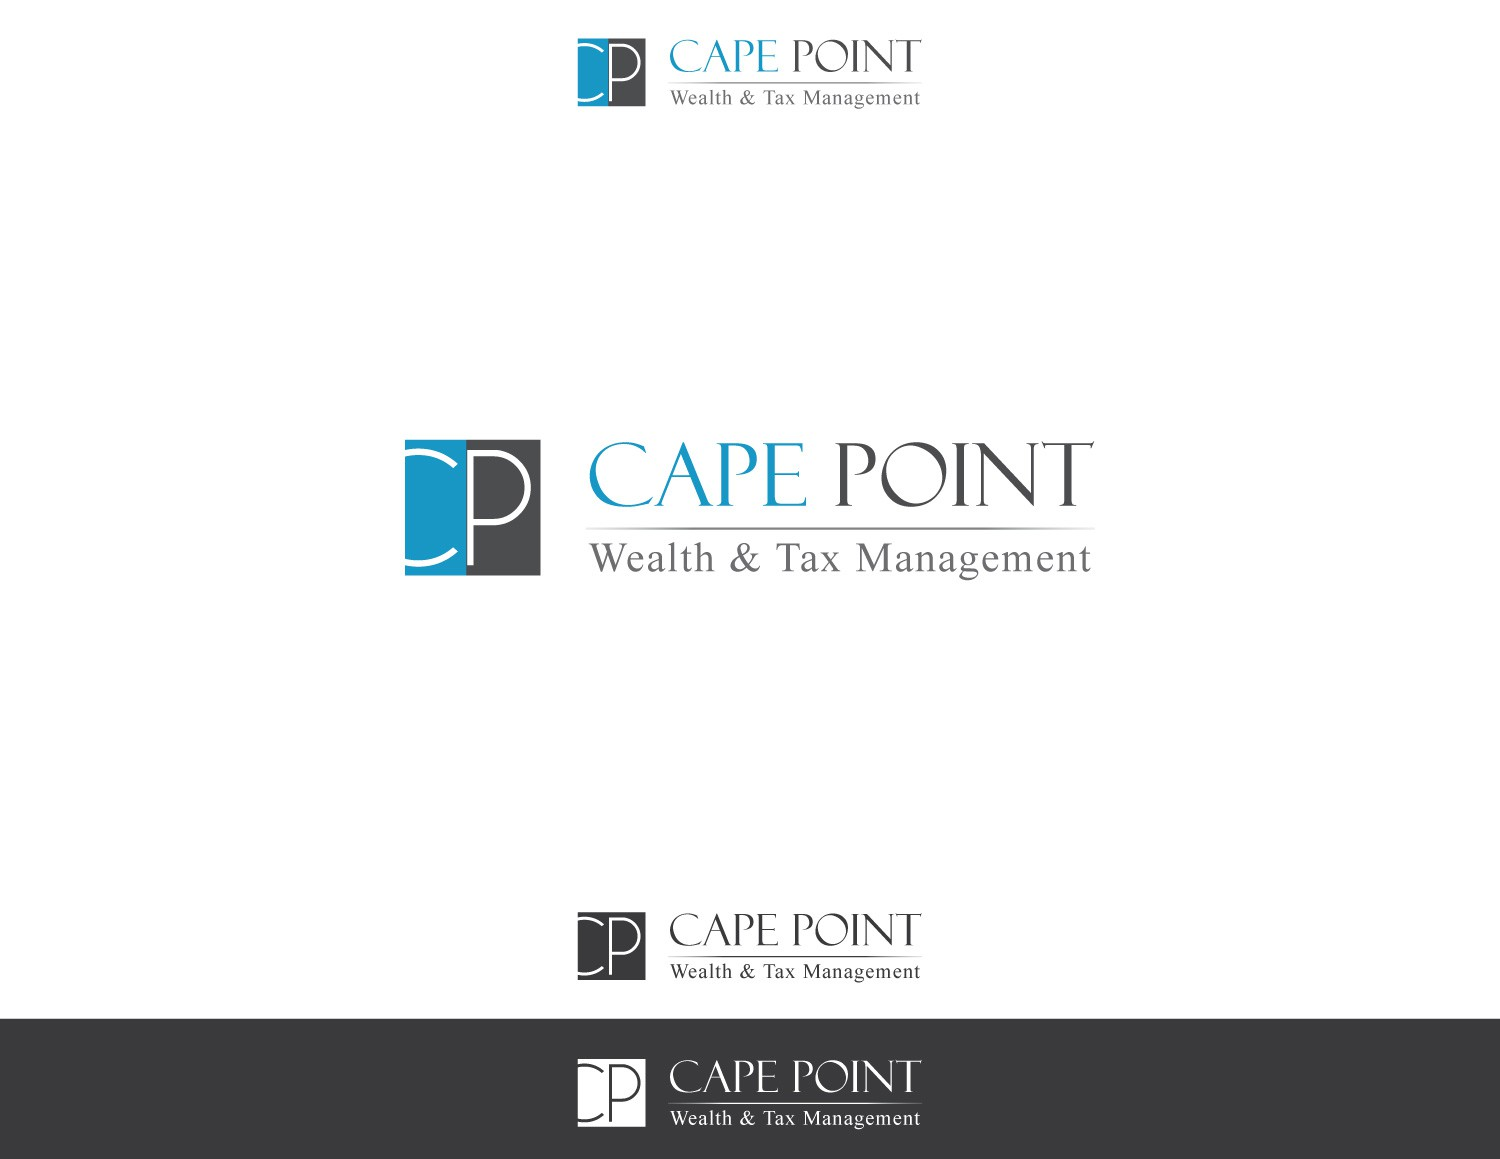 Help Cape Point Wealth & Tax Management with a new logo